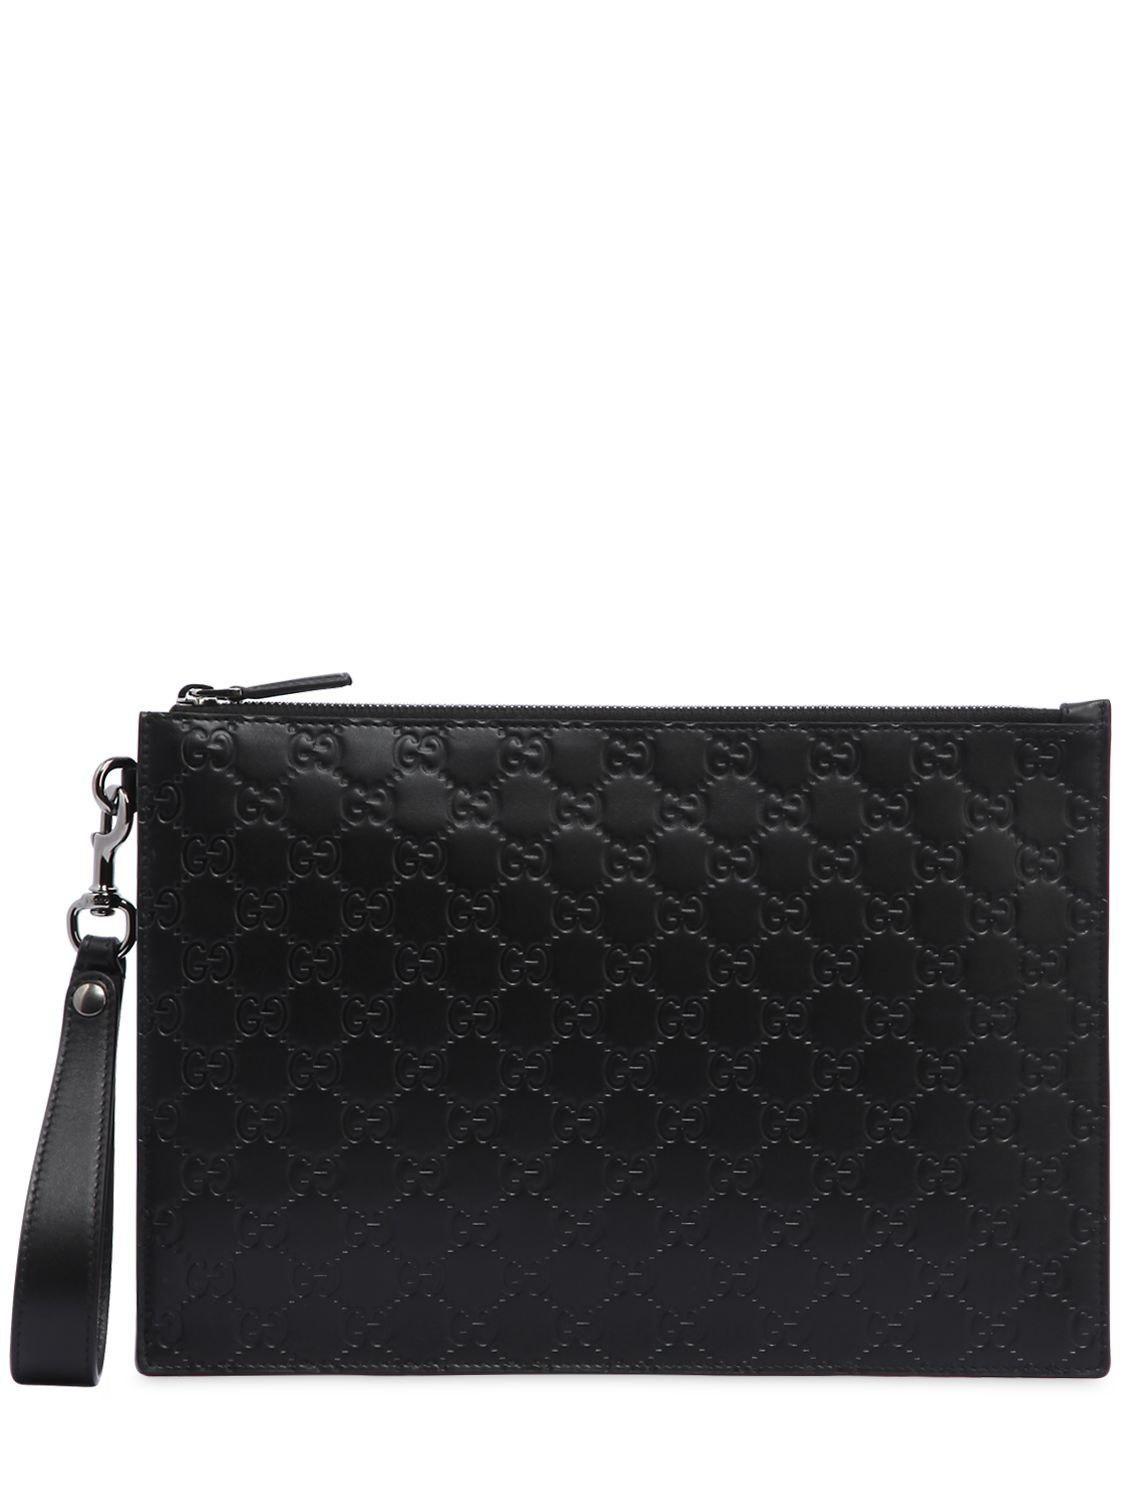 1b50532d028 Gucci Signature Gg Supreme Logo Leather Pouch in Black for Men - Lyst